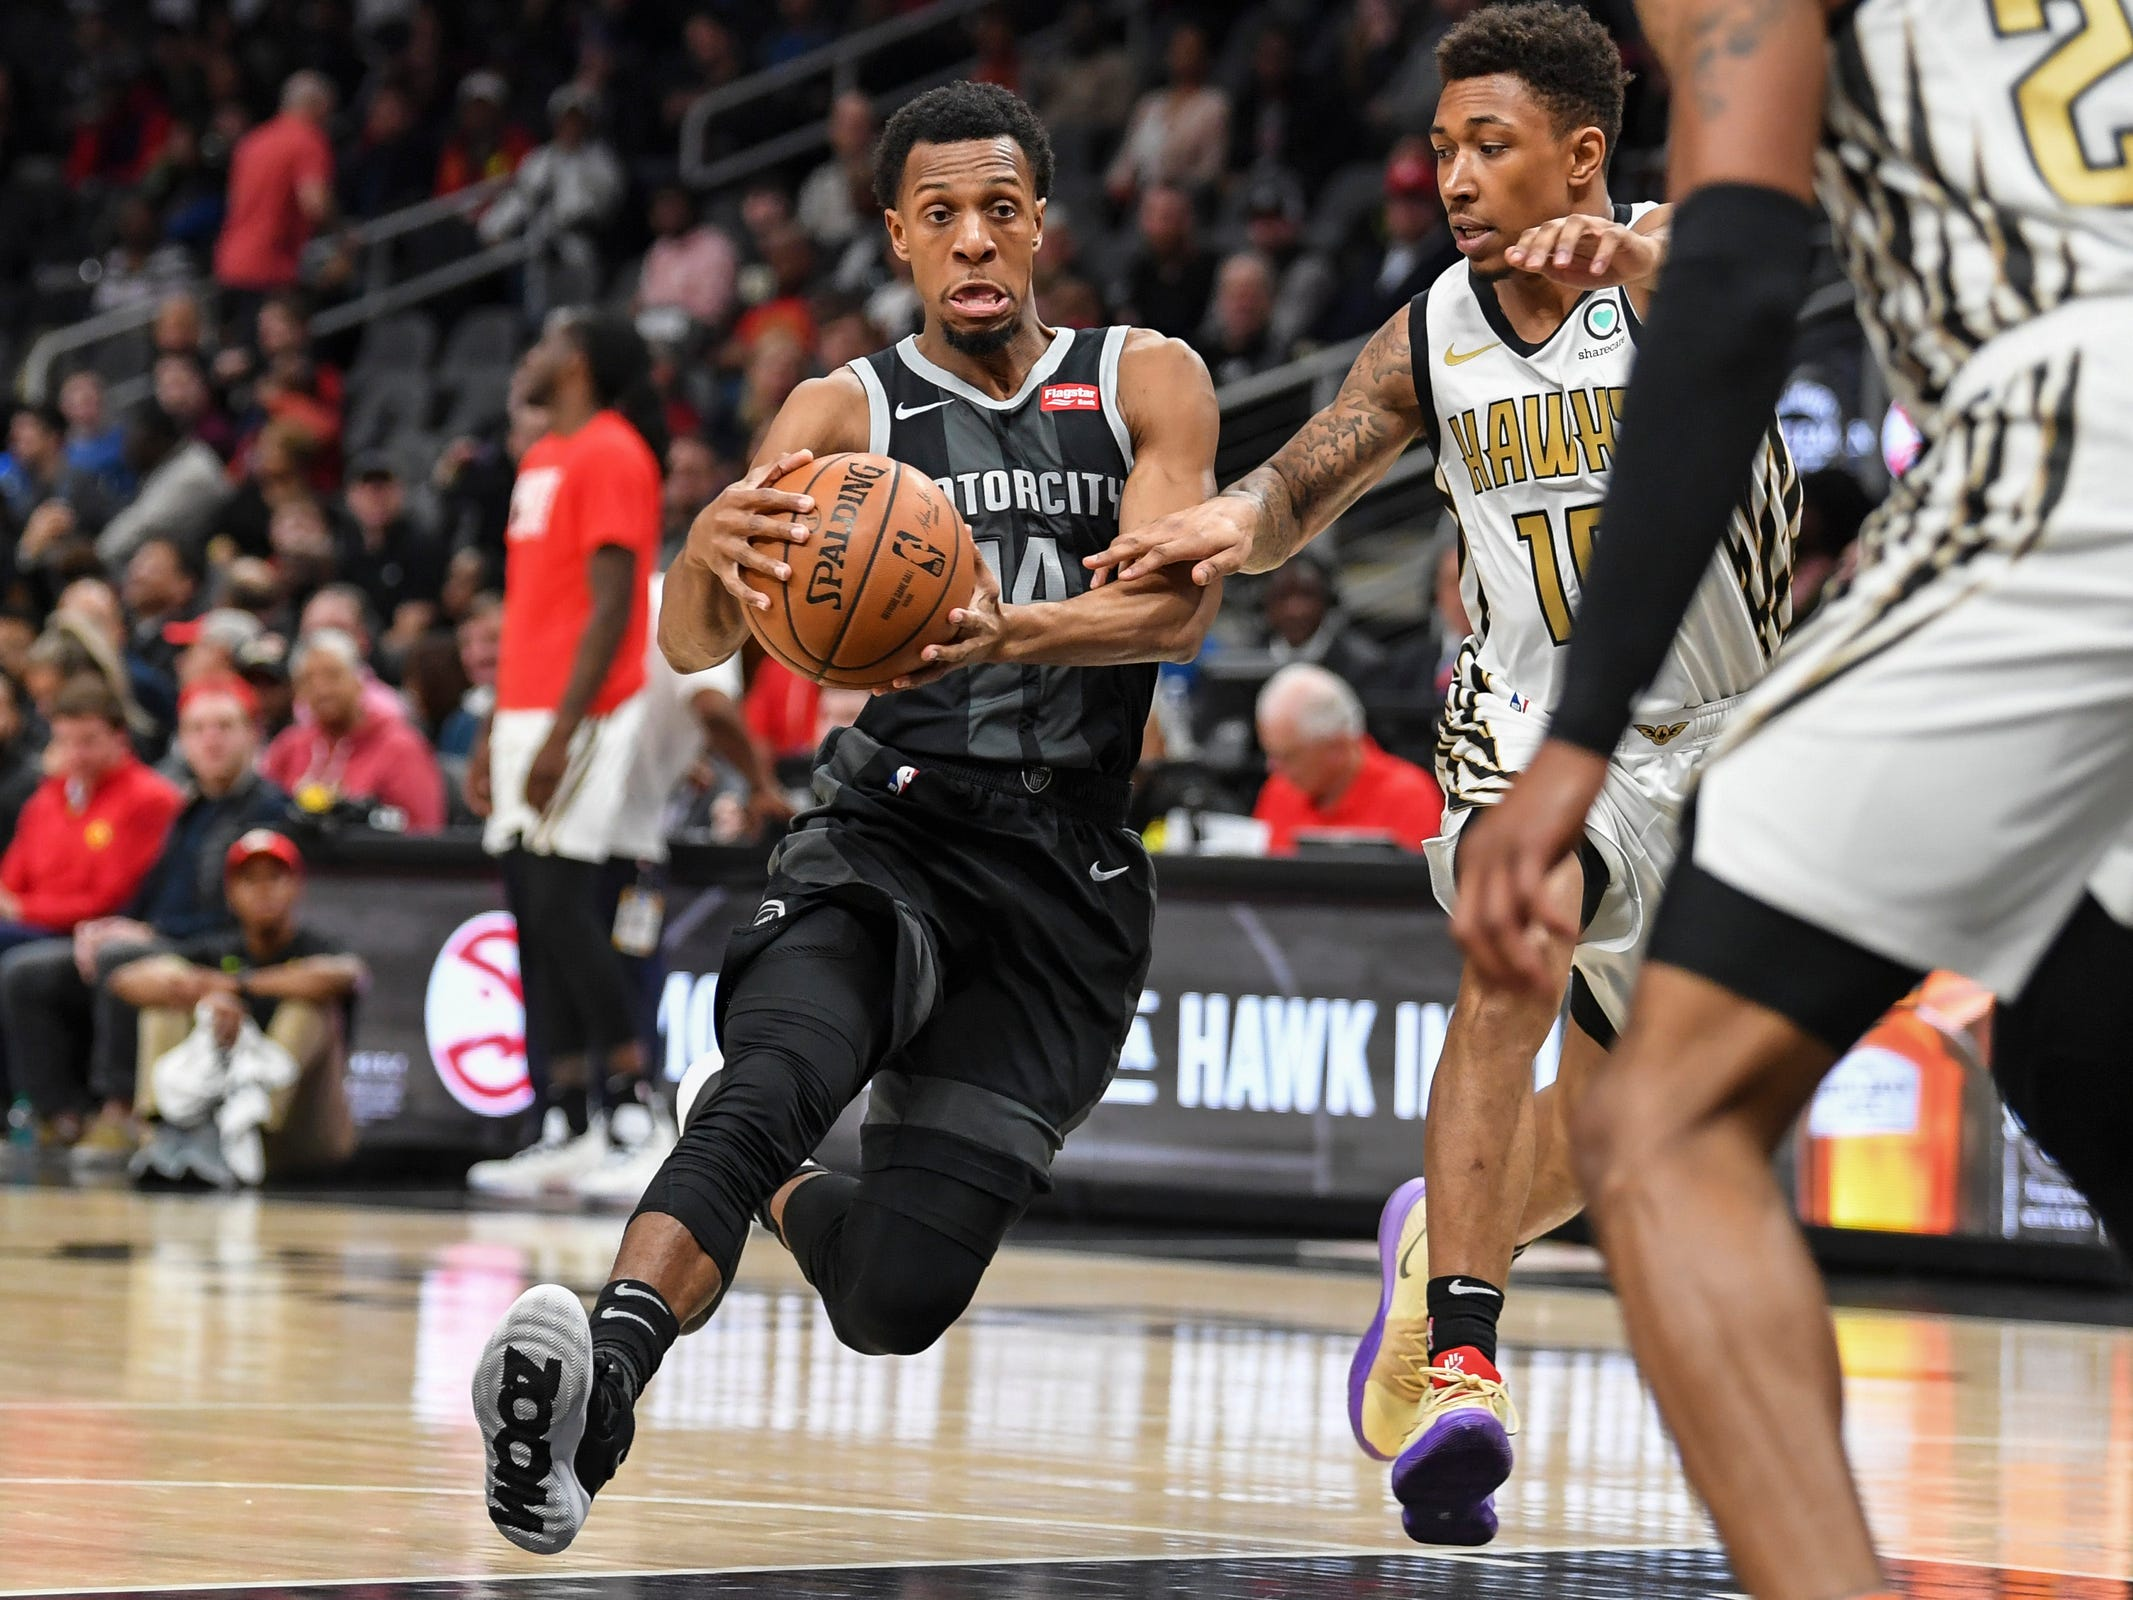 Detroit Pistons guard Ish Smith (14) dribbles the ball as Atlanta Hawks guard Jaylen Adams (10) defends during the first half at State Farm Arena on Feb. 22, 2019.